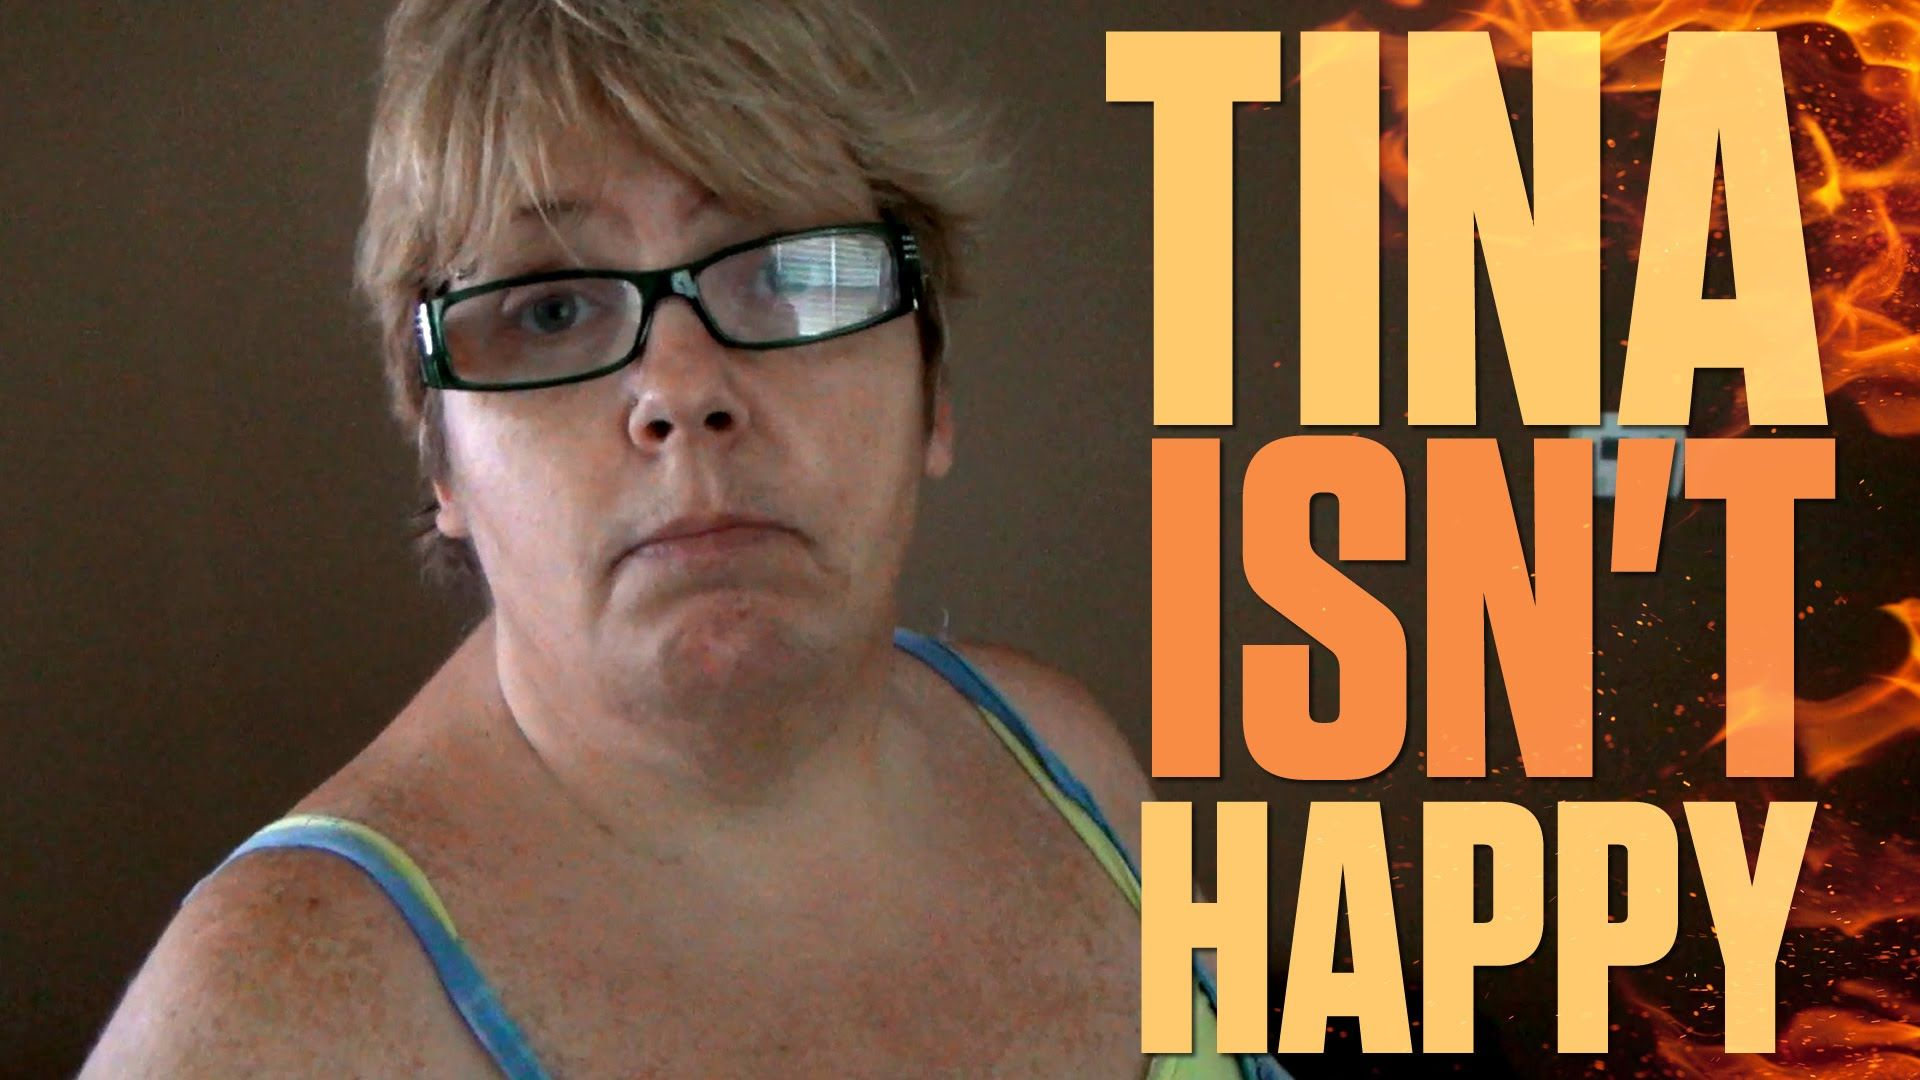 TINA ISN'T HAPPY!